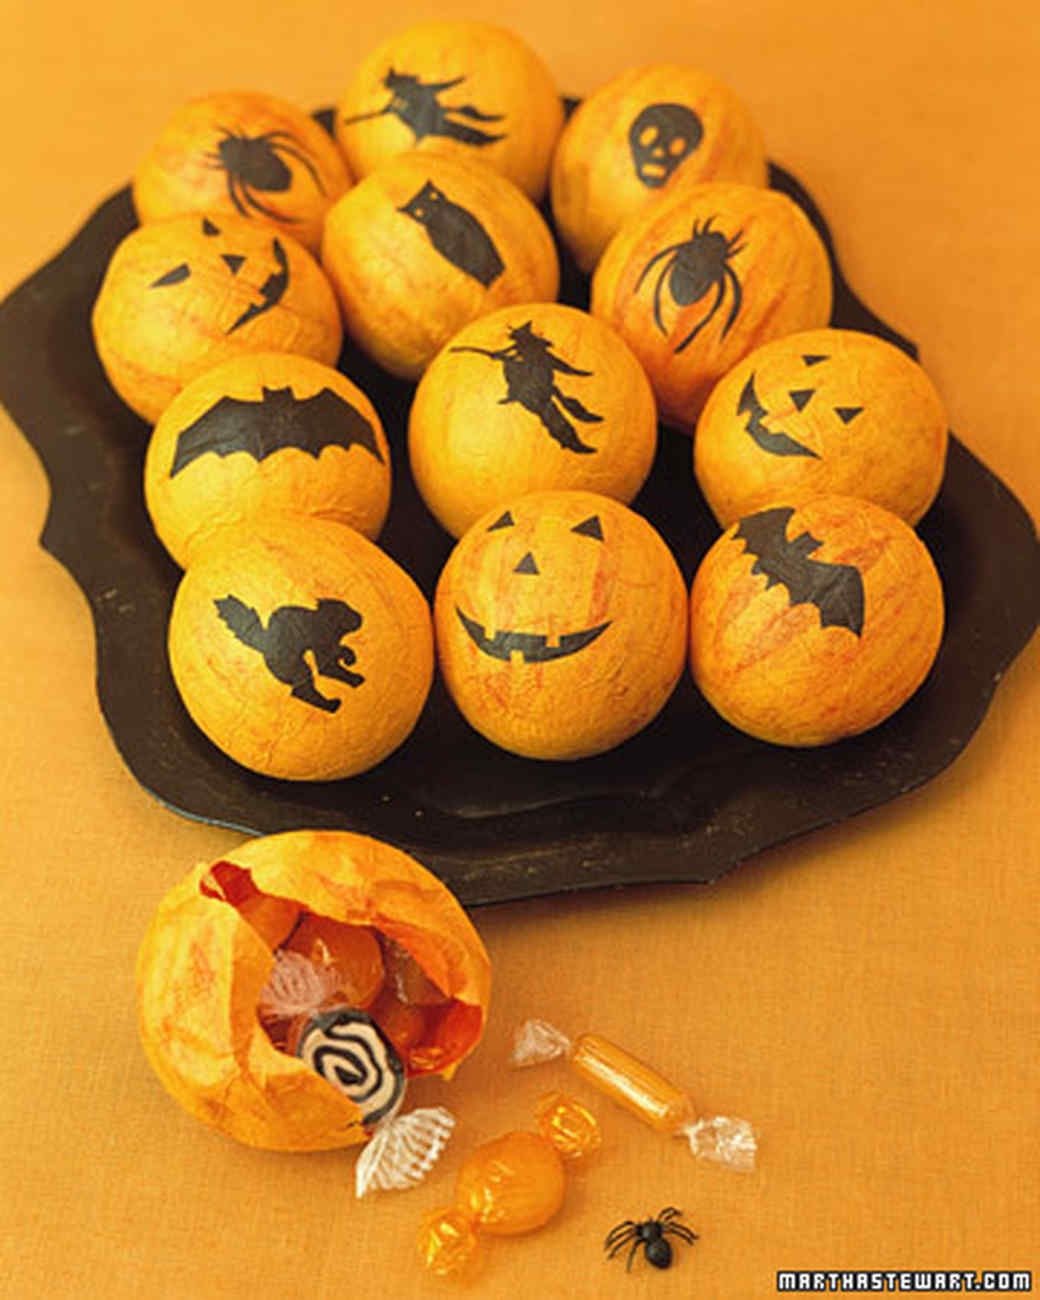 Halloween birthday party decorations - Treat Balls Treat Balls Adorned With Silhouettes Are Spooky Halloween Party Favors